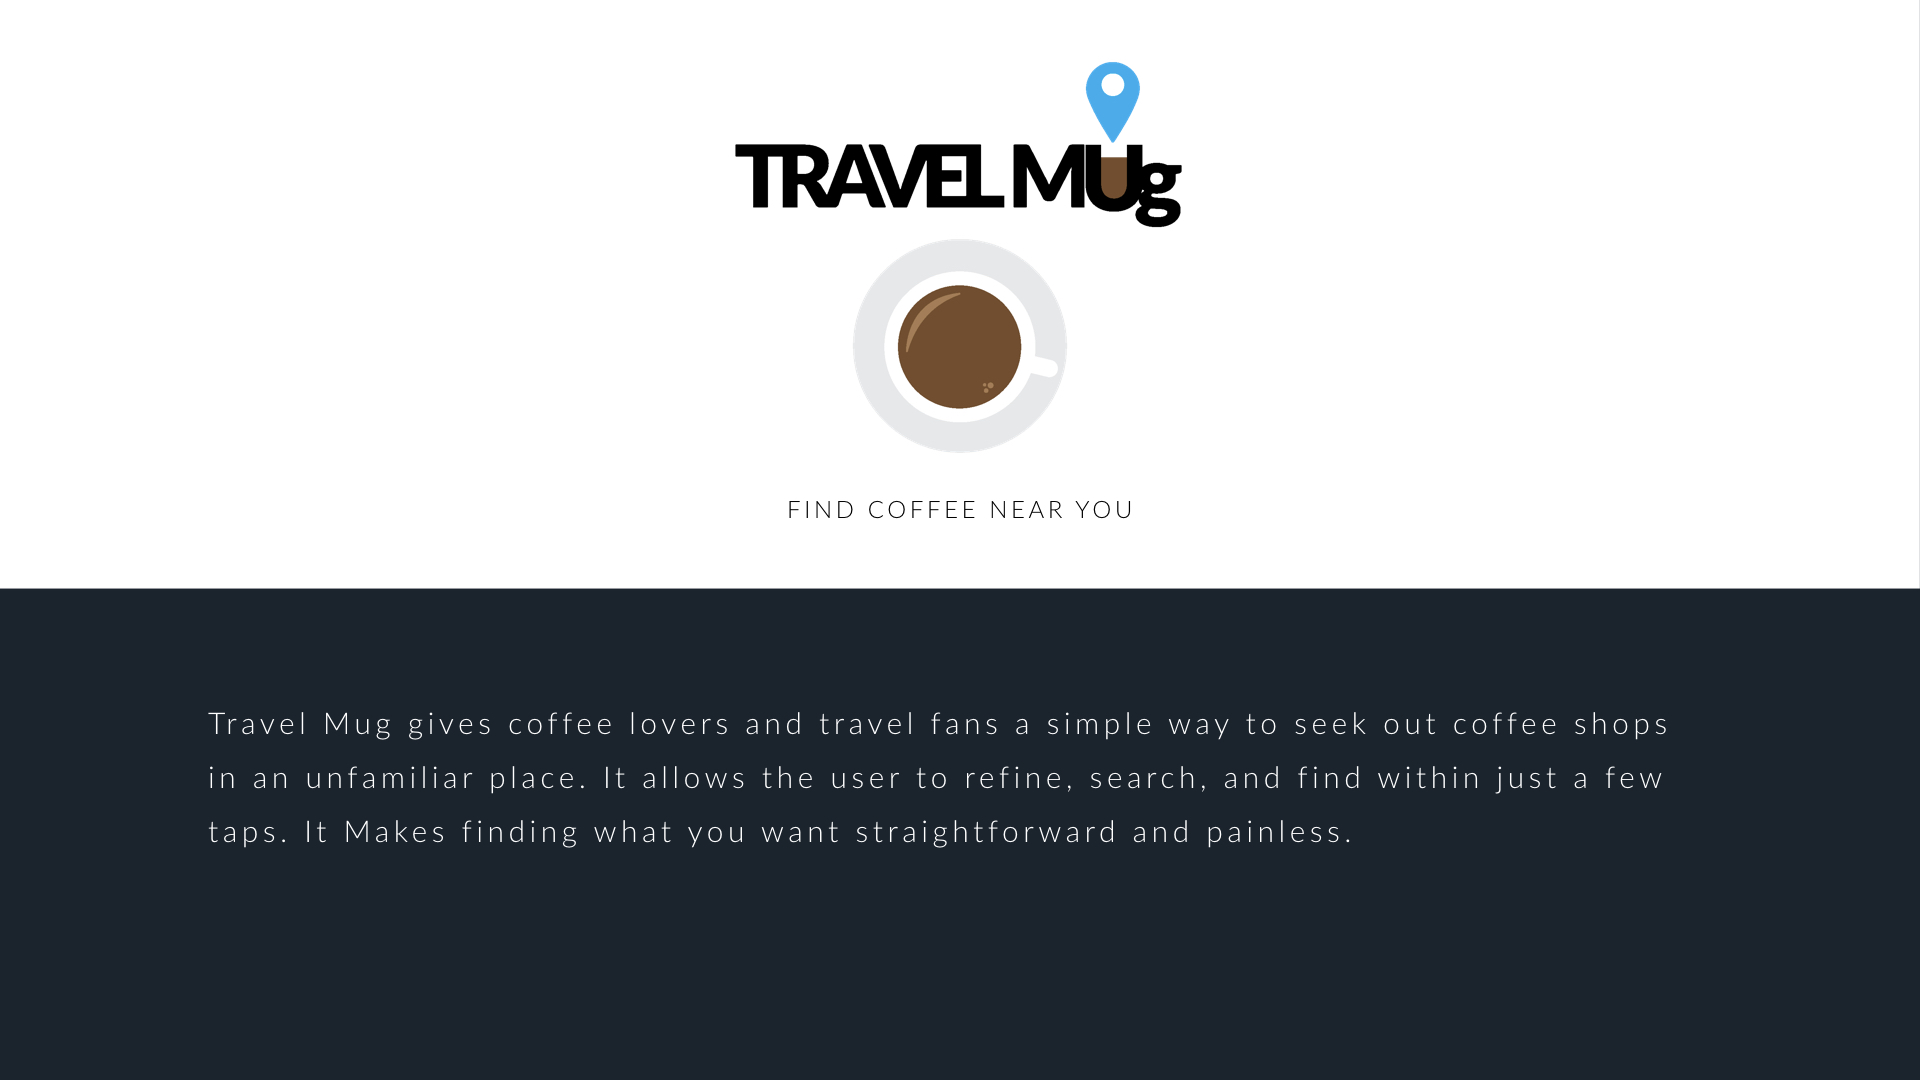 Travel-Mug-App.002.jpeg